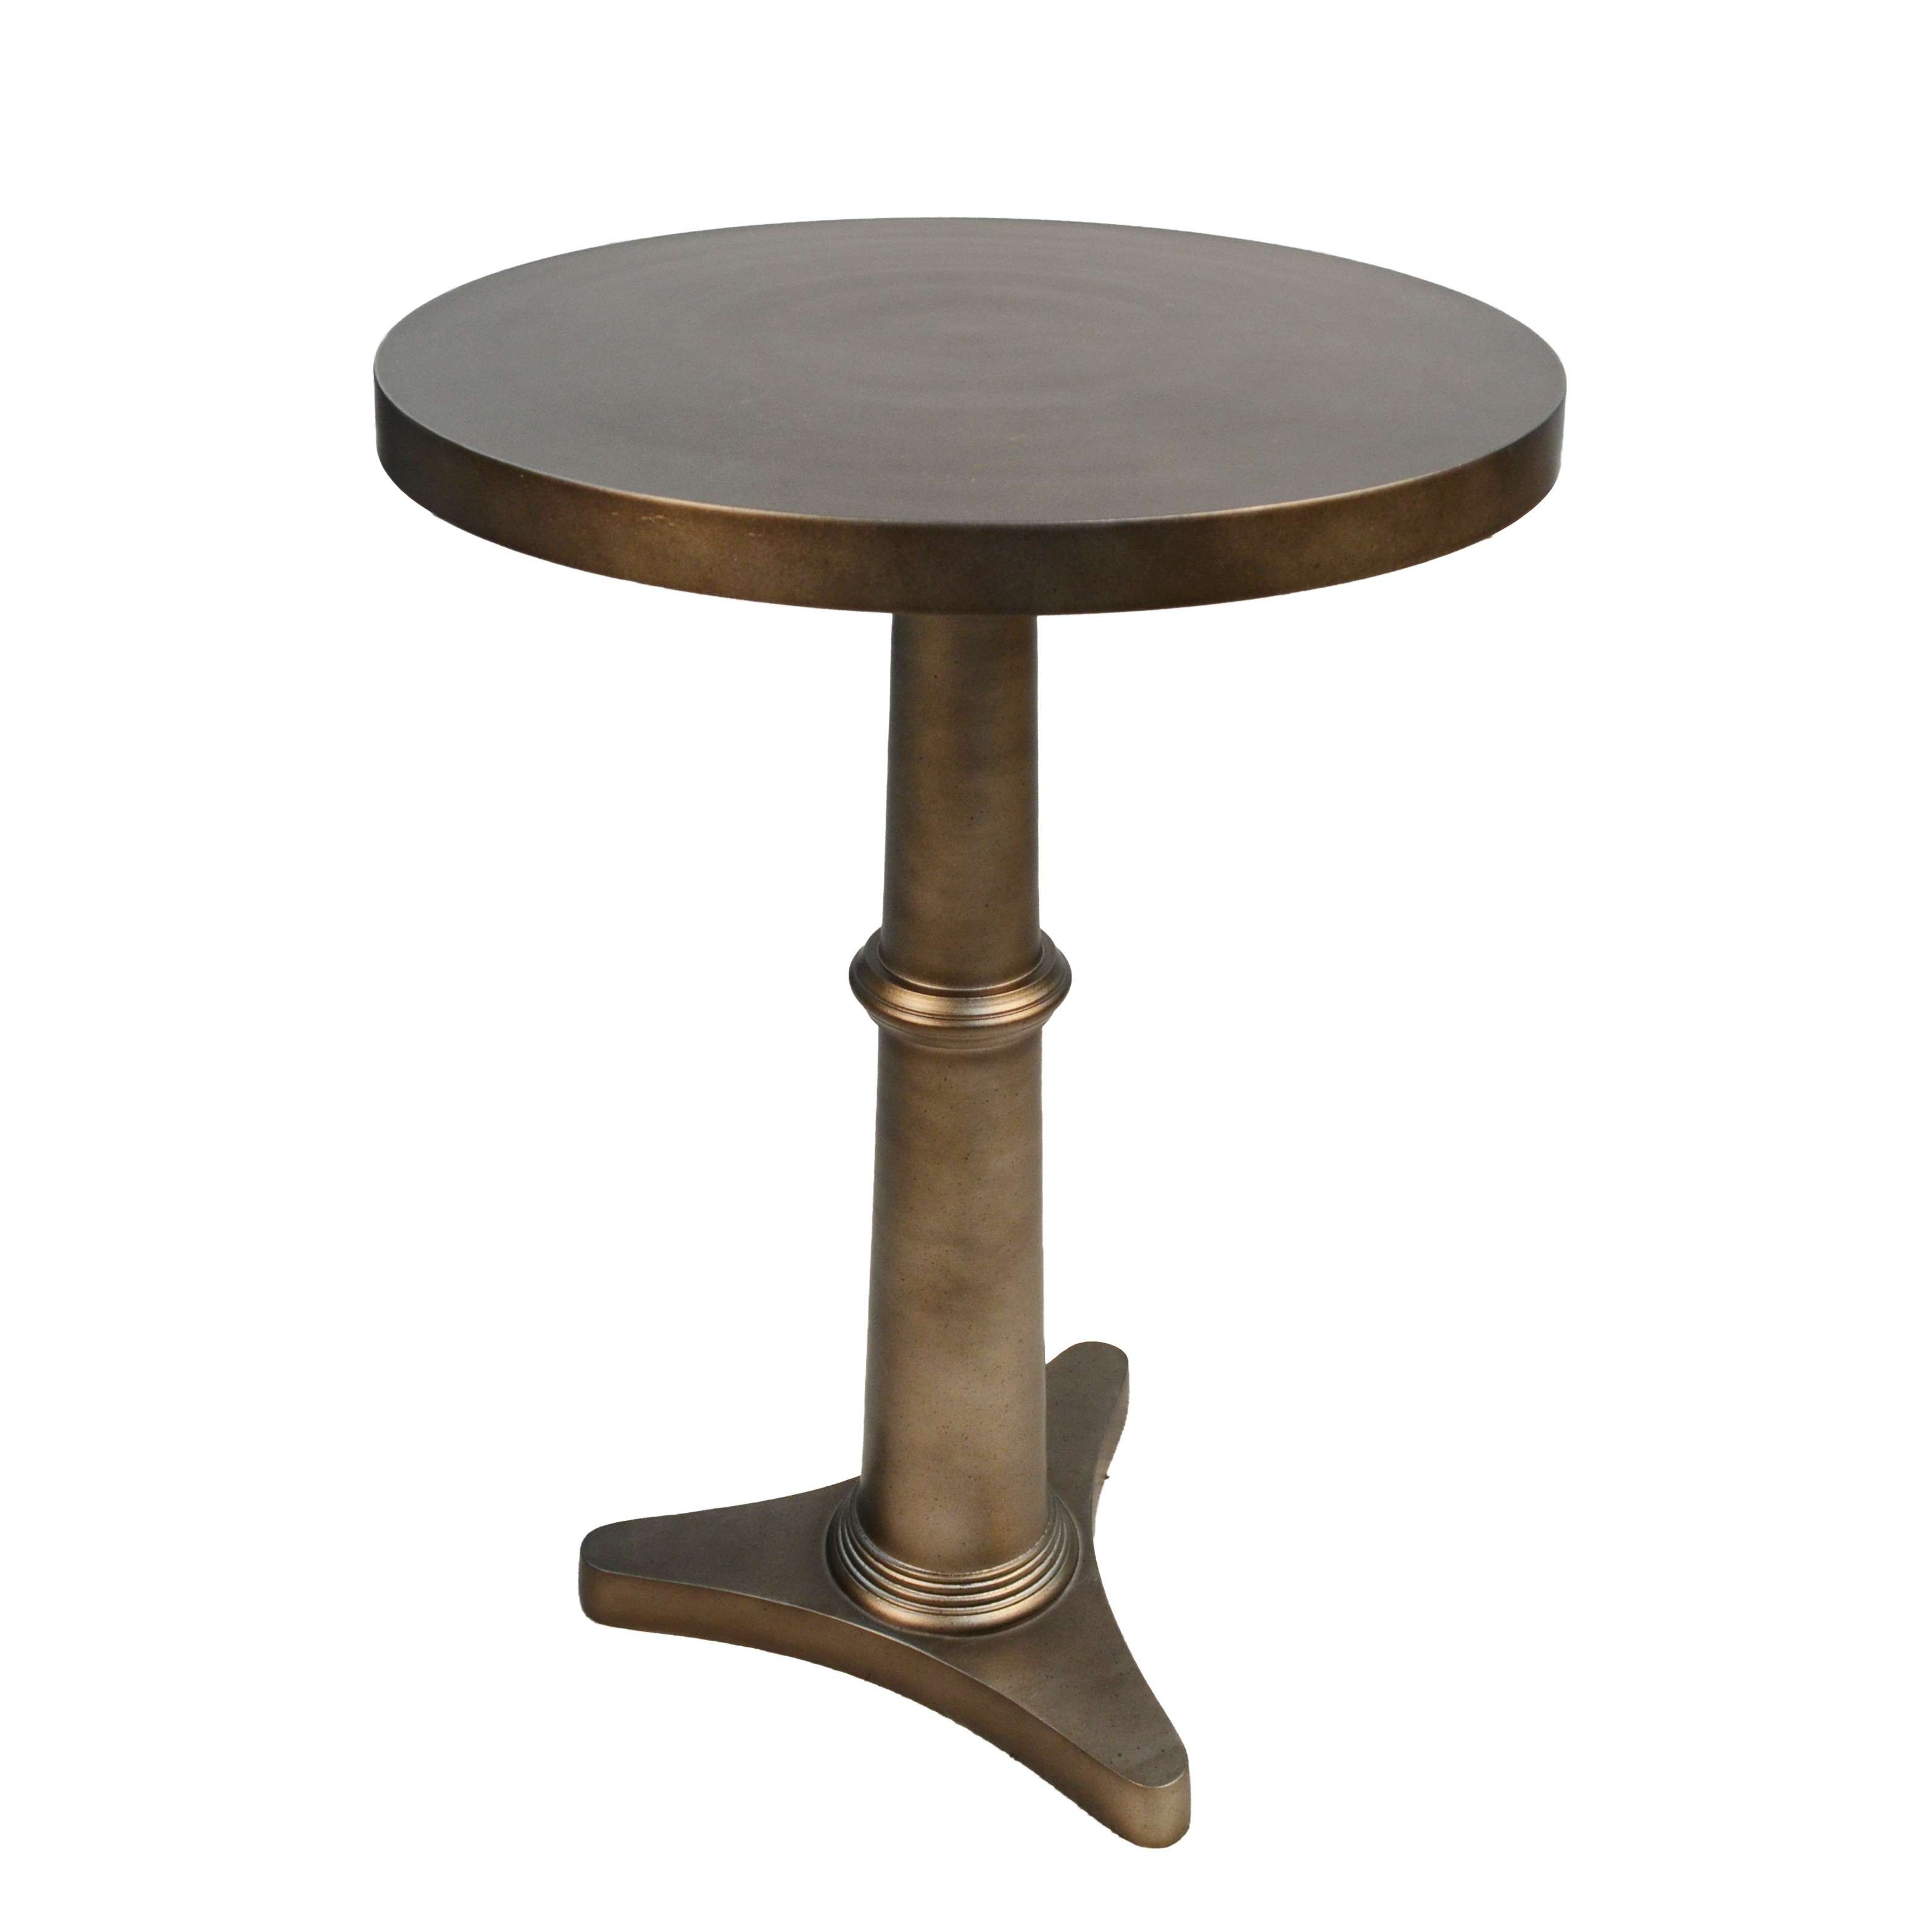 carolina chair table chatham antique bronze round accent small tables perched bird storage box seat ikea side pub with chairs corner cabinet maple top white nightstand wine rack